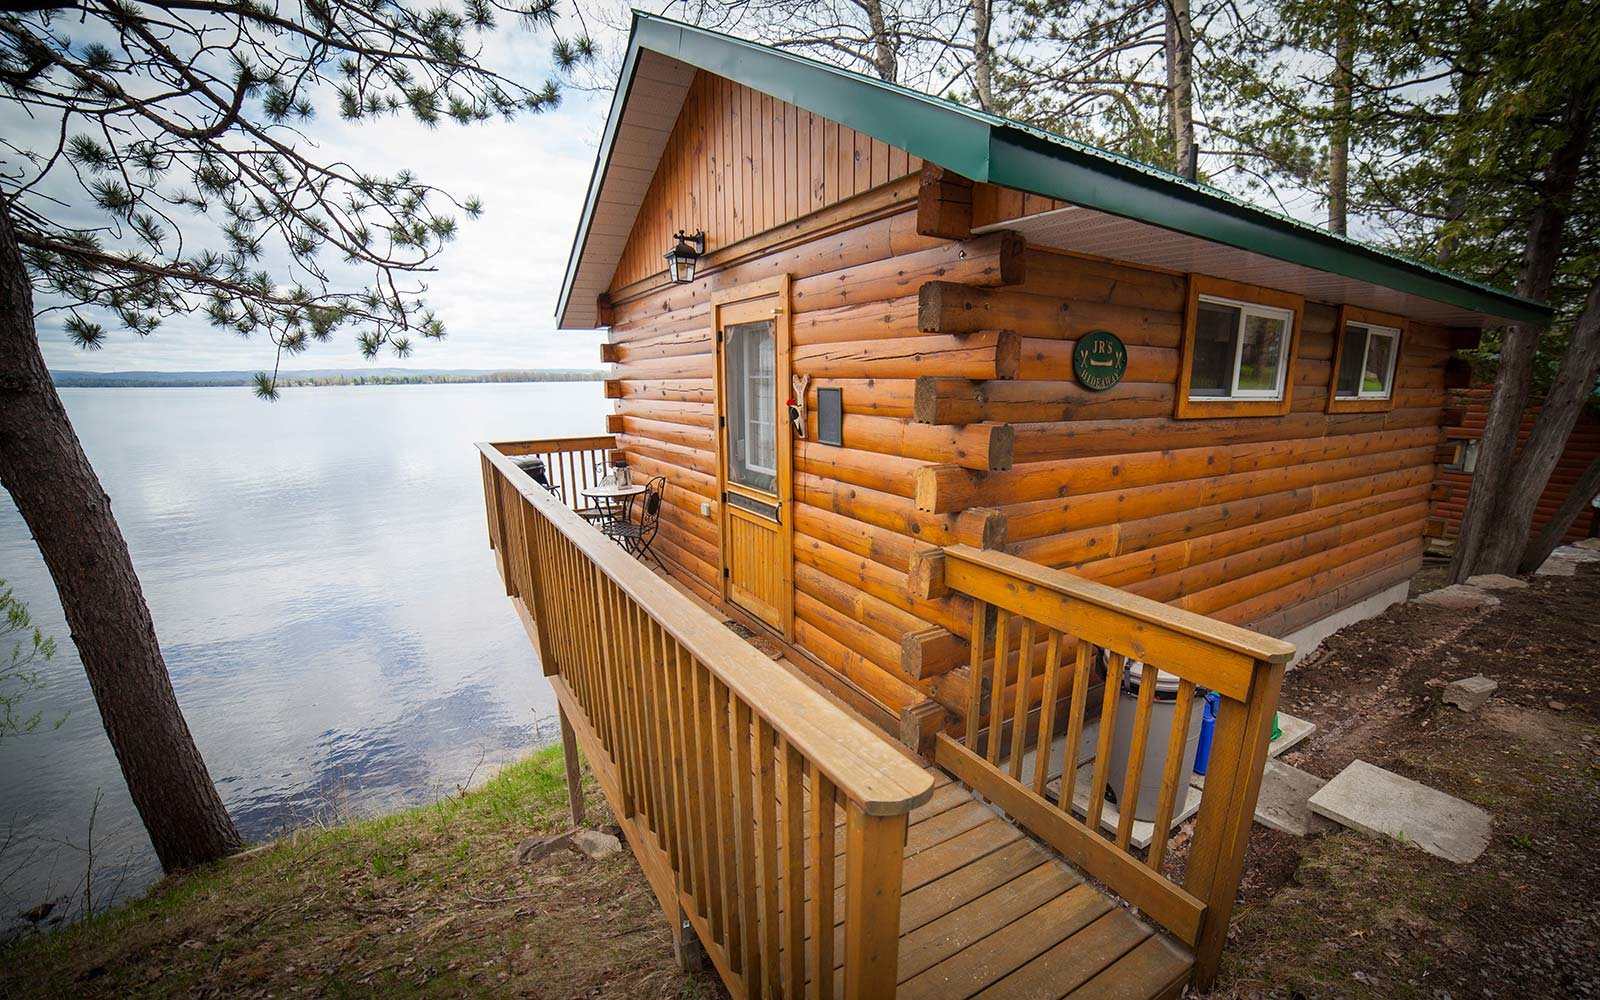 Airbnb Holiday Vacation Rental Treetop Golden lake Ontario Canada